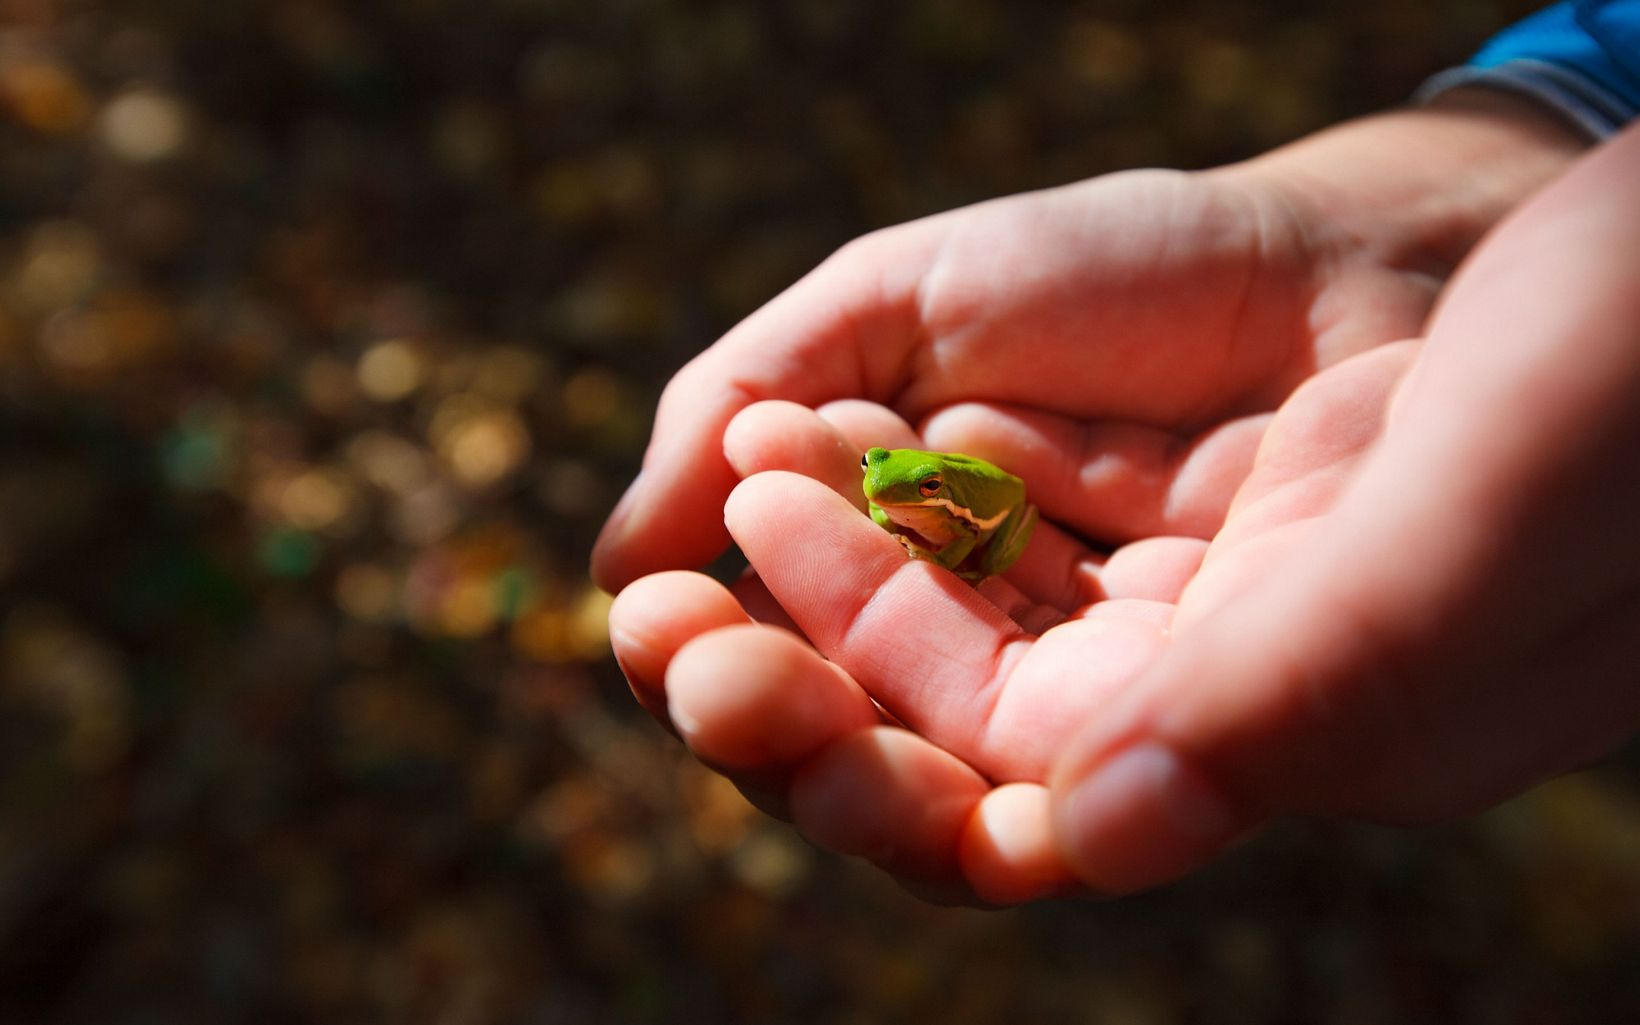 Closeup of hands holding a tiny green frog.